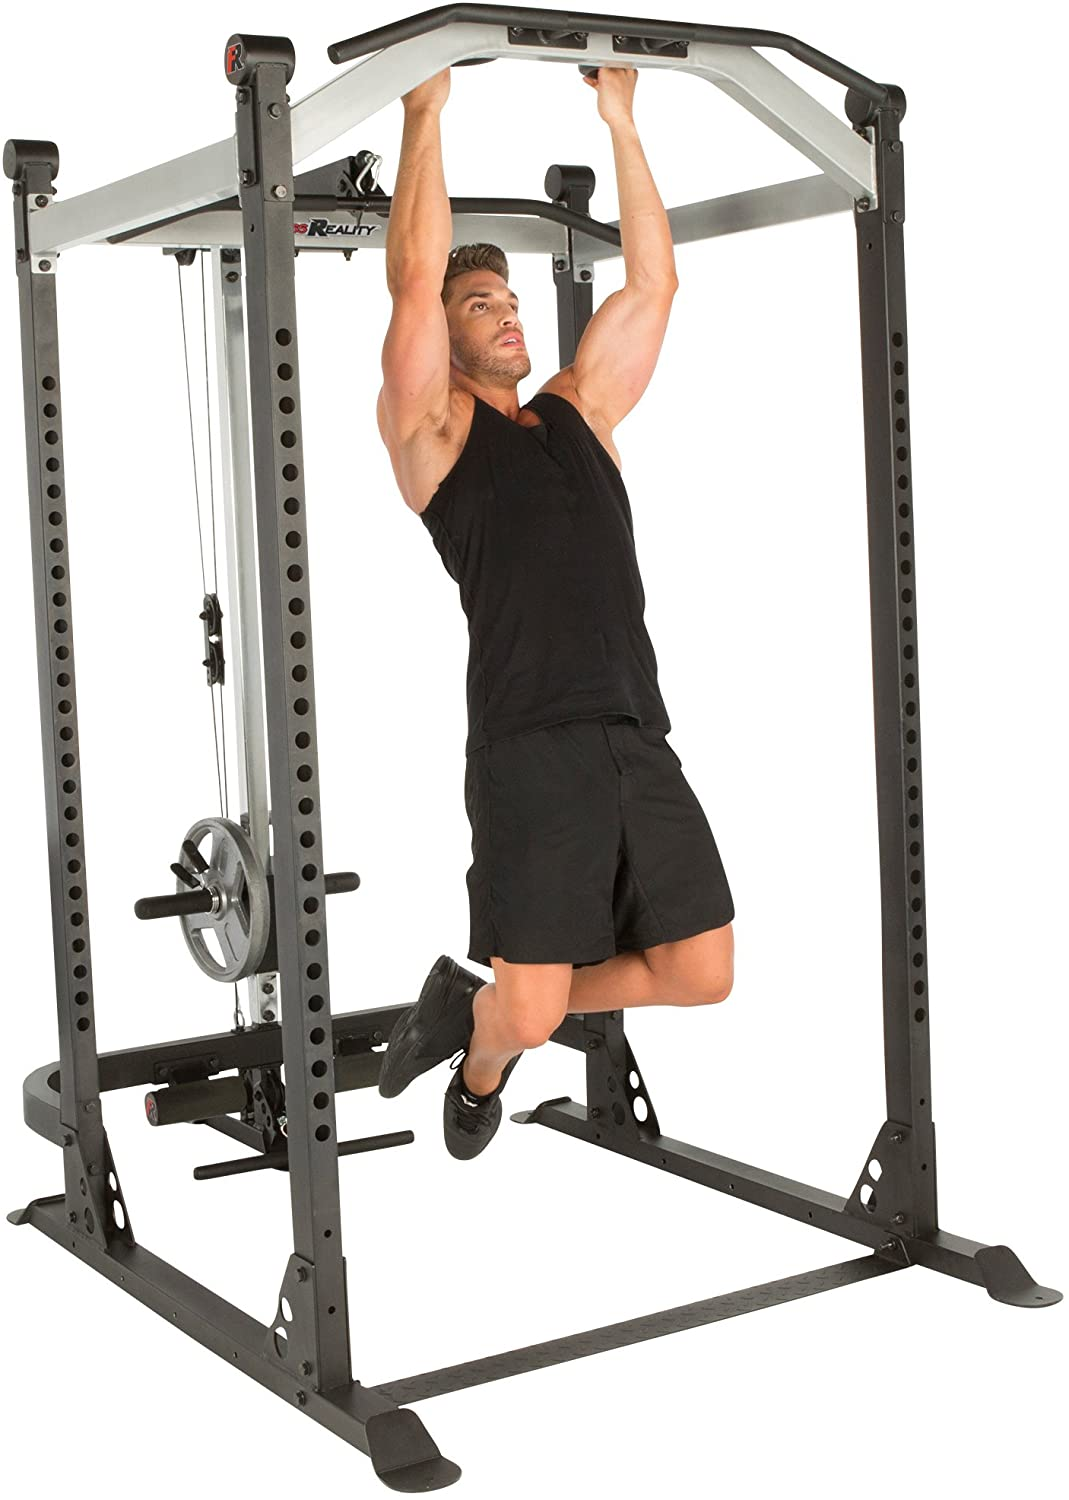 Fitness Reality High Capacity Olympic Power Cage